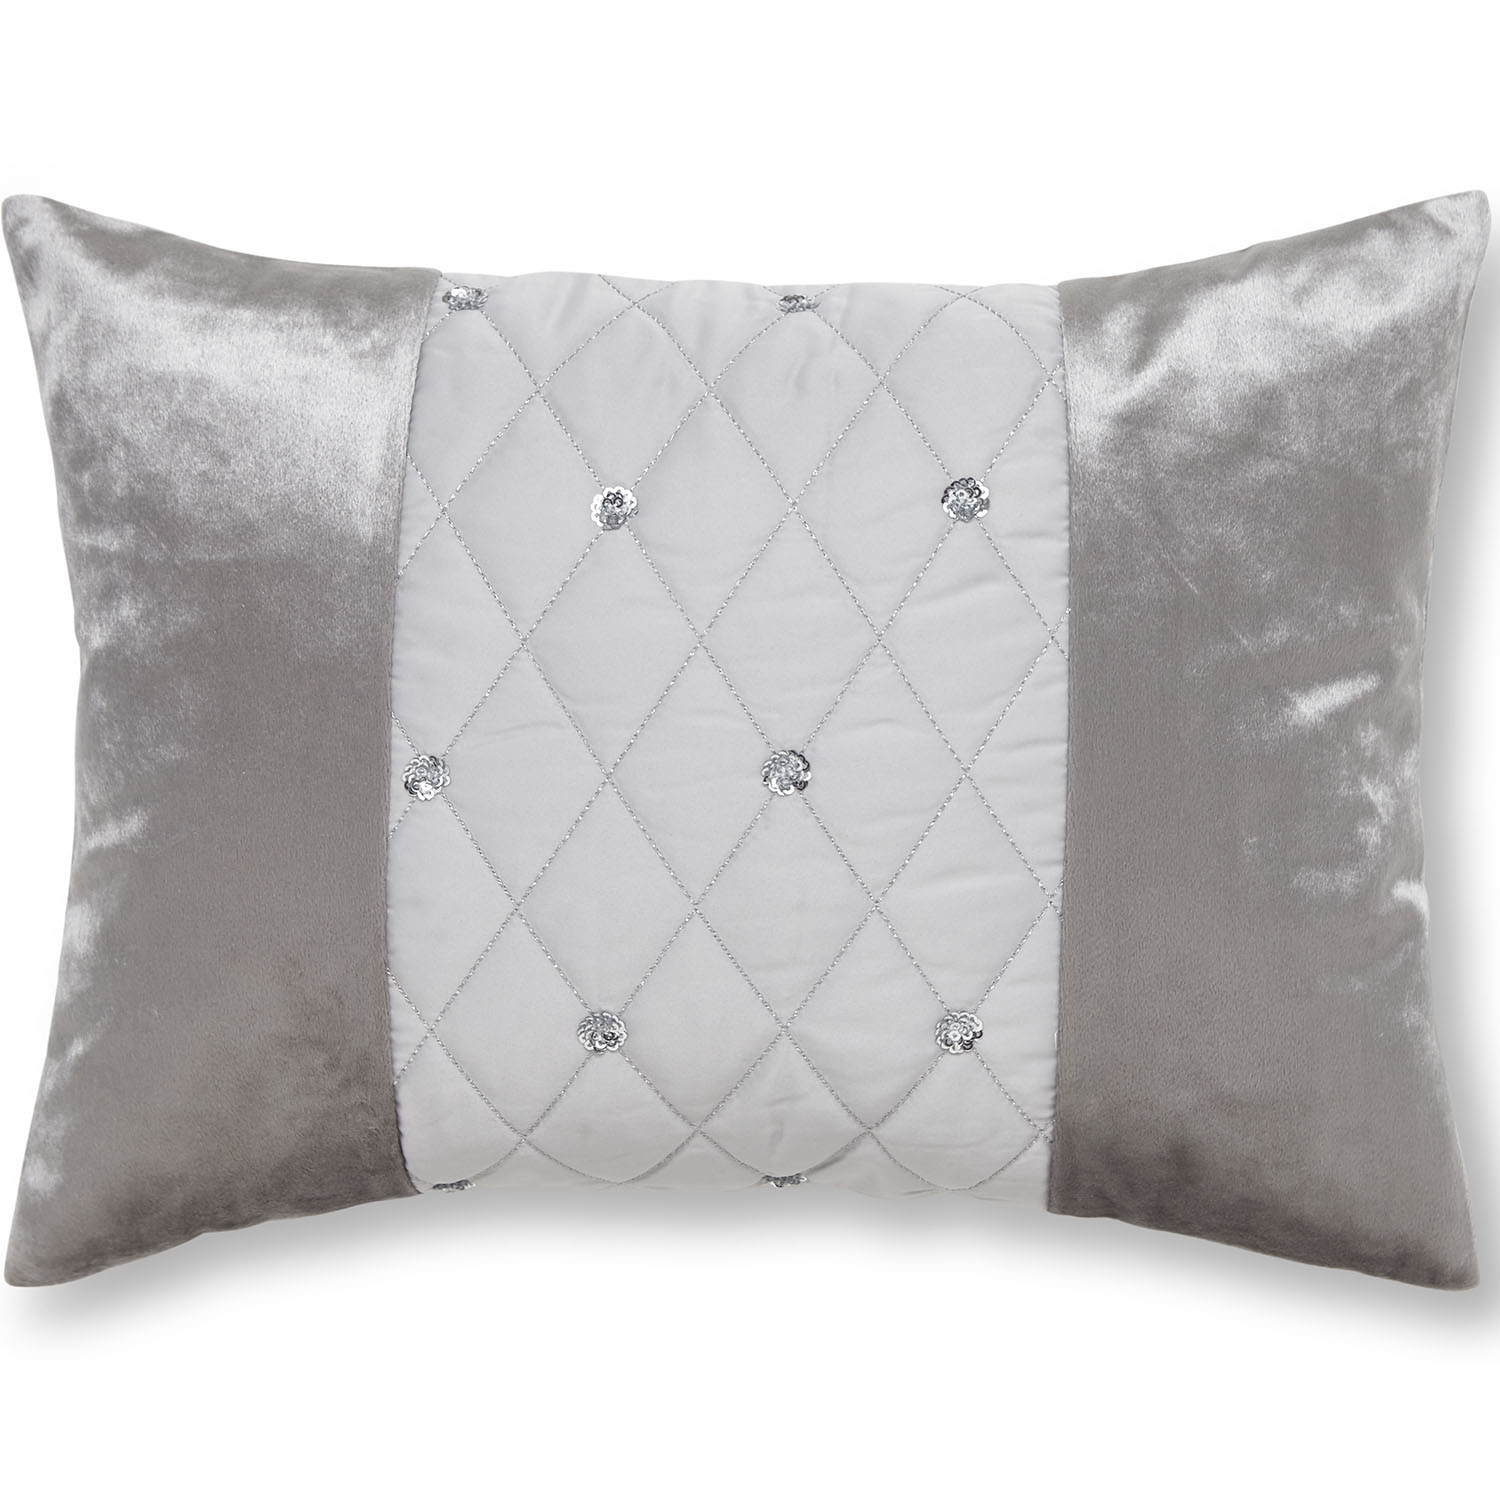 Image of Catherine Lansfield Sequin Cluster Cushion, 40cm x 30cm, Silver